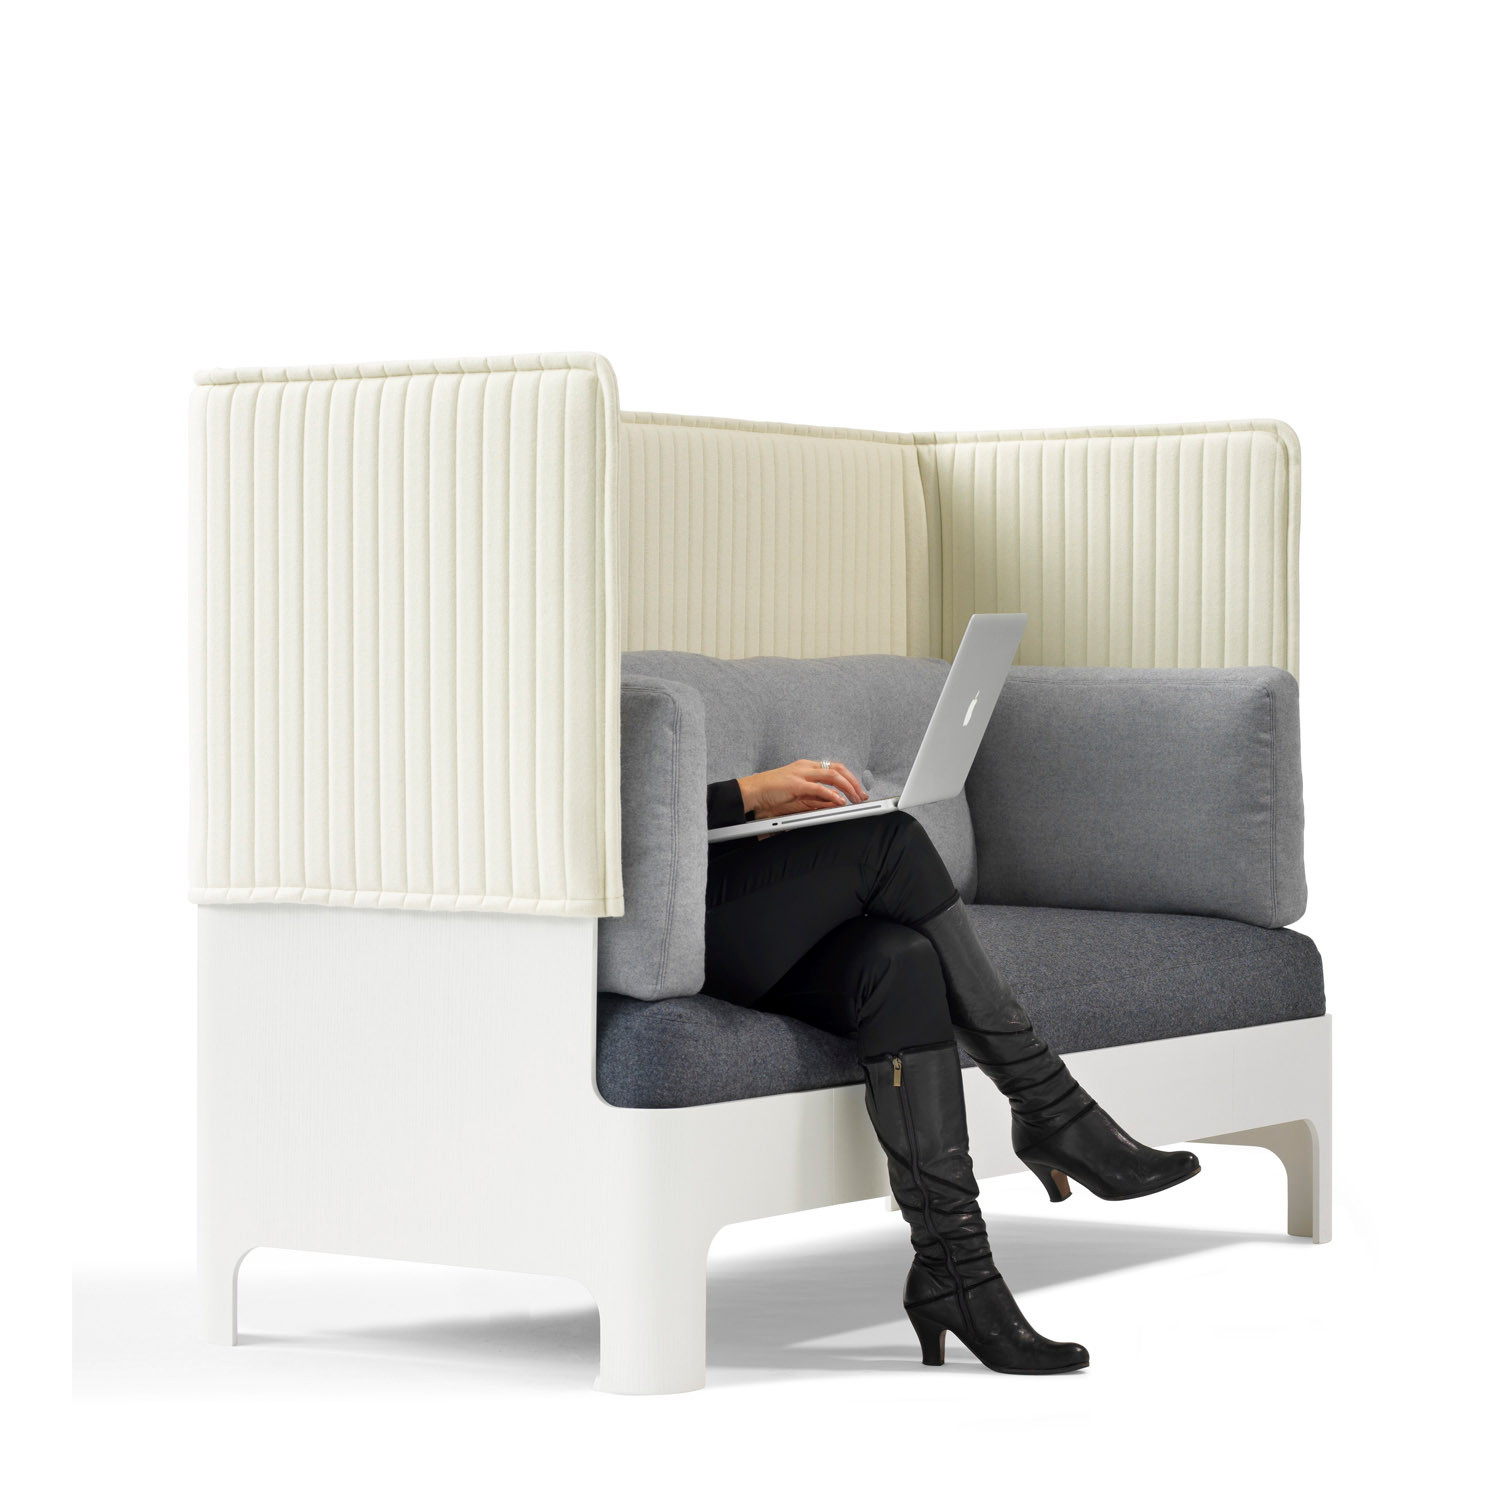 Koja High Back Sofa S52H | Acoustic Seating| Apres Furniture Pertaining To Sofas With High Backs (View 5 of 15)